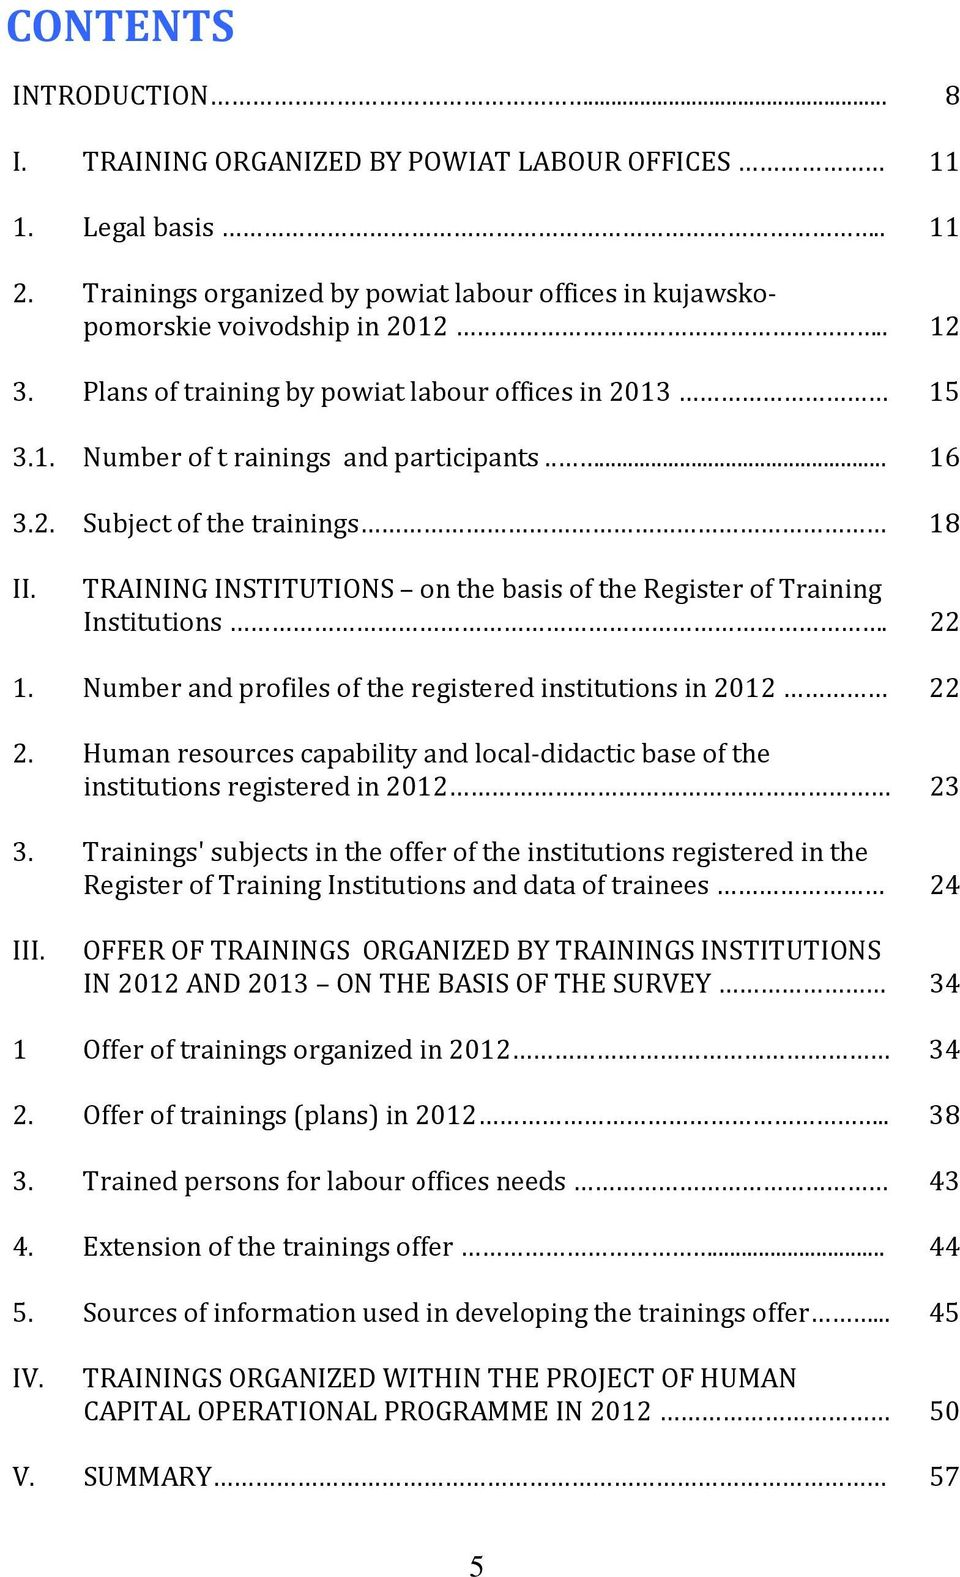 TRAINING INSTITUTIONS on the basis of the Register of Training Institutions. 22 1. Number and profiles of the registered institutions in 2012 22 2.